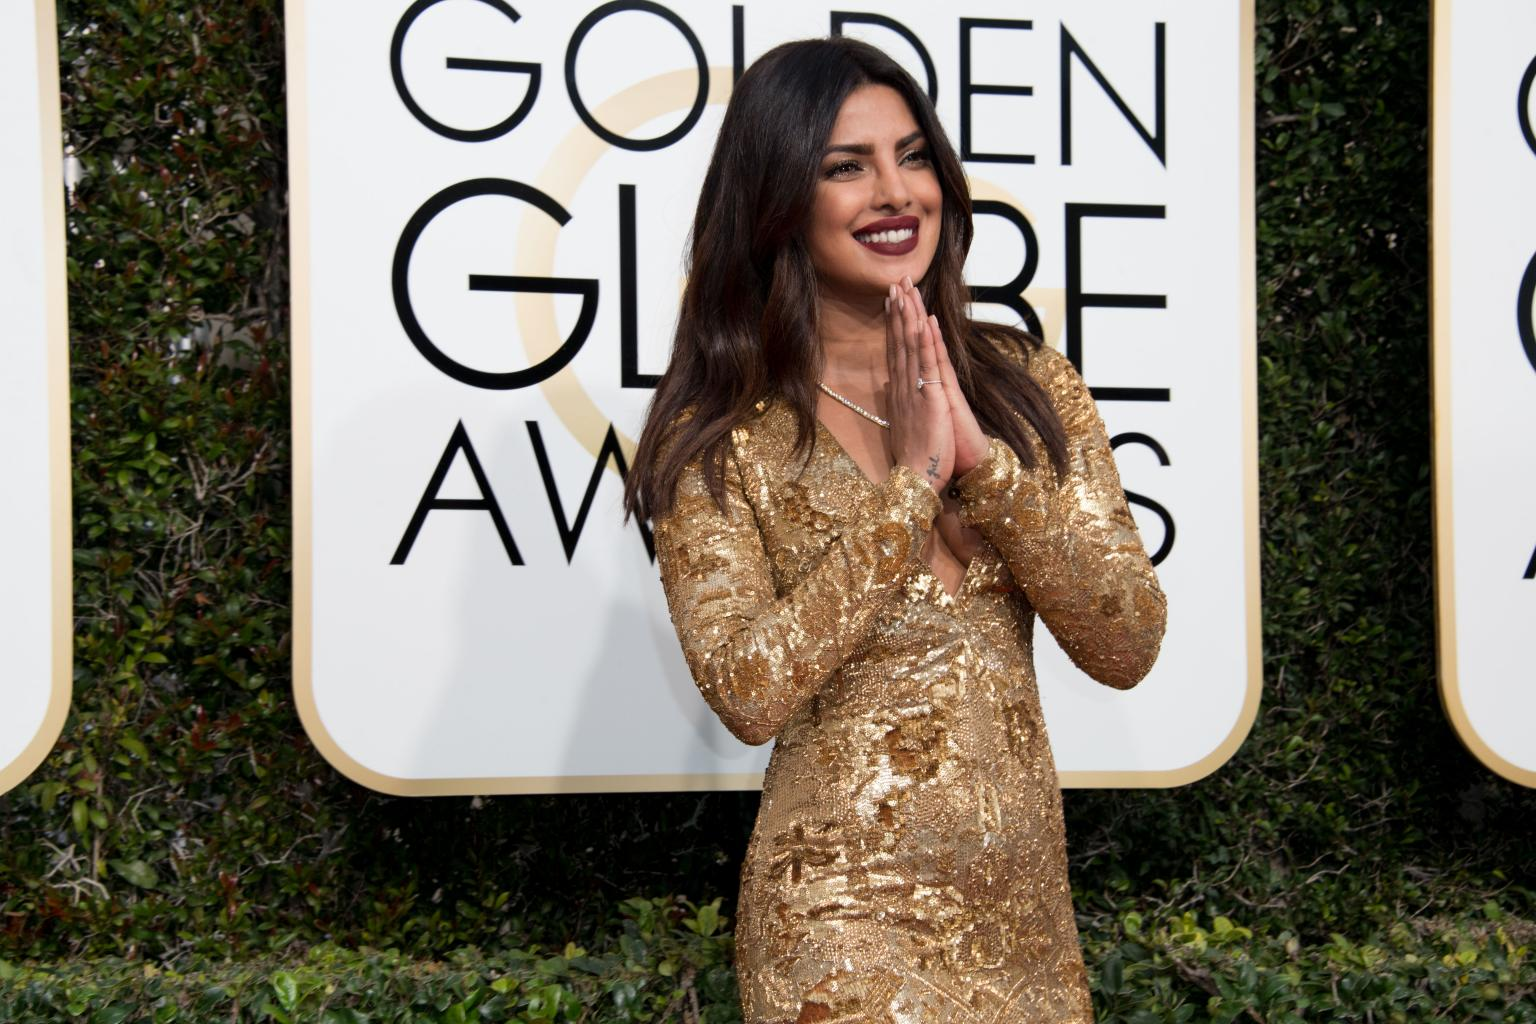 Priyanka Chopra Rushed To Hospital After Accident On 'Quantico' Set